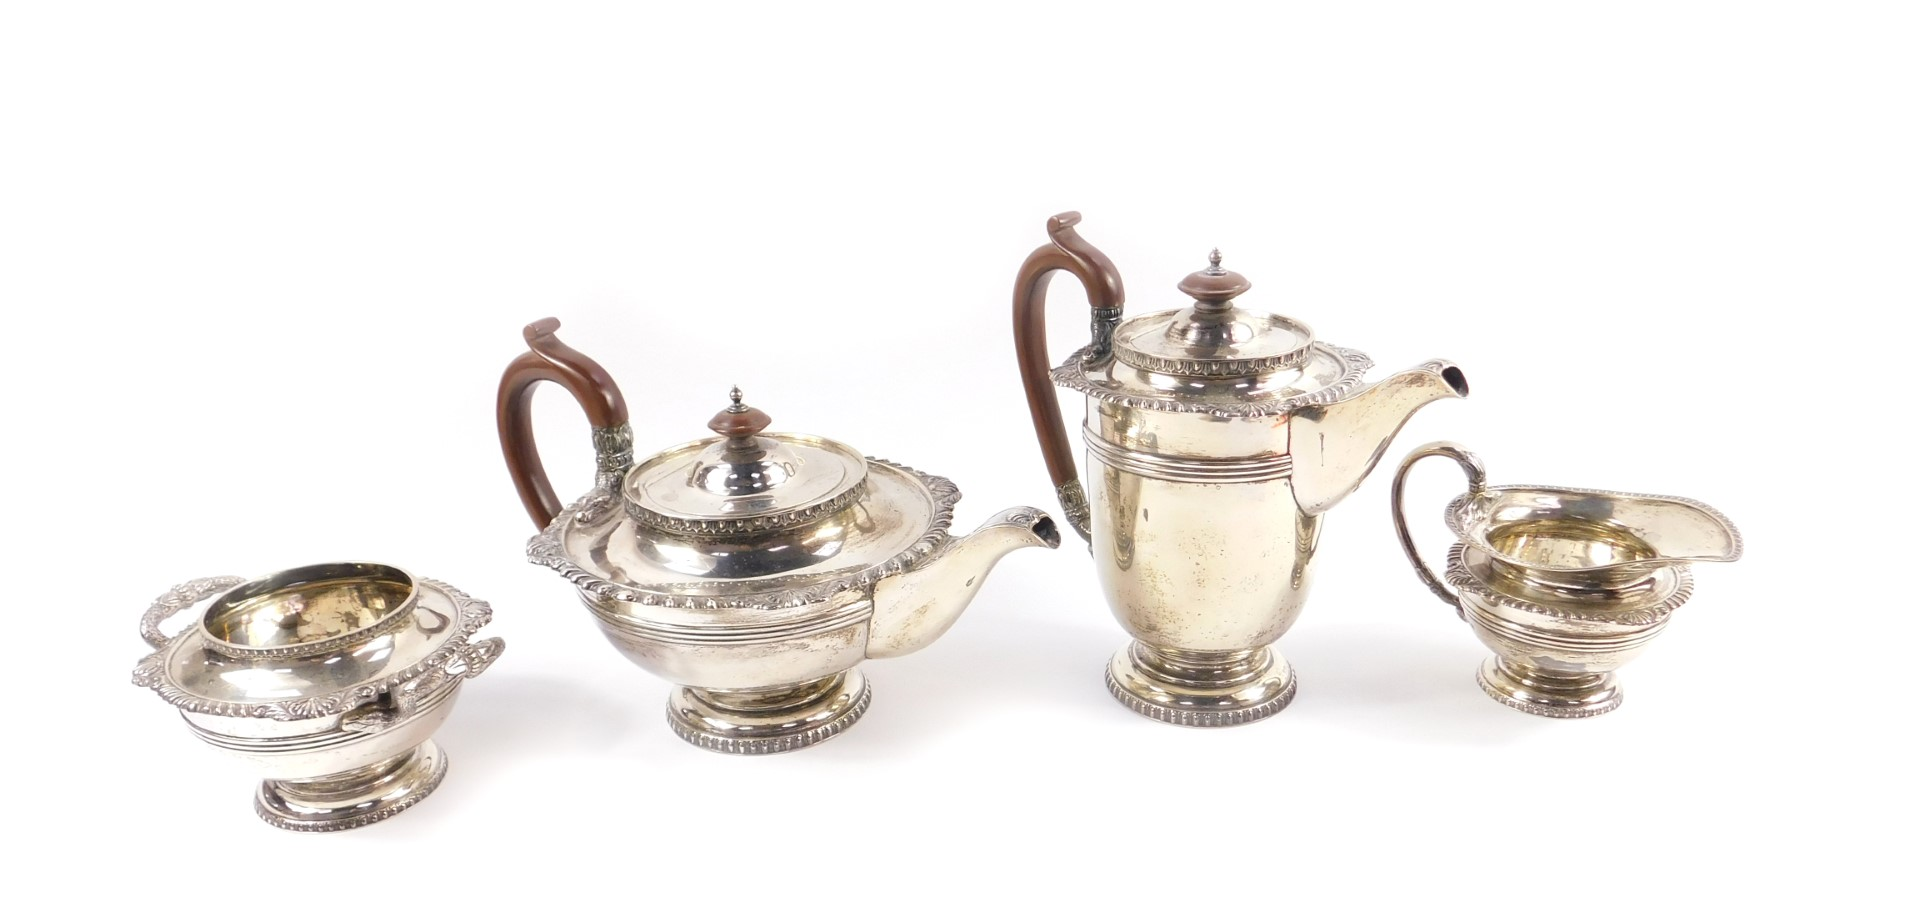 Lot 2 - A George V silver four piece tea and coffee service, of baluster form, with fluted banding, shell